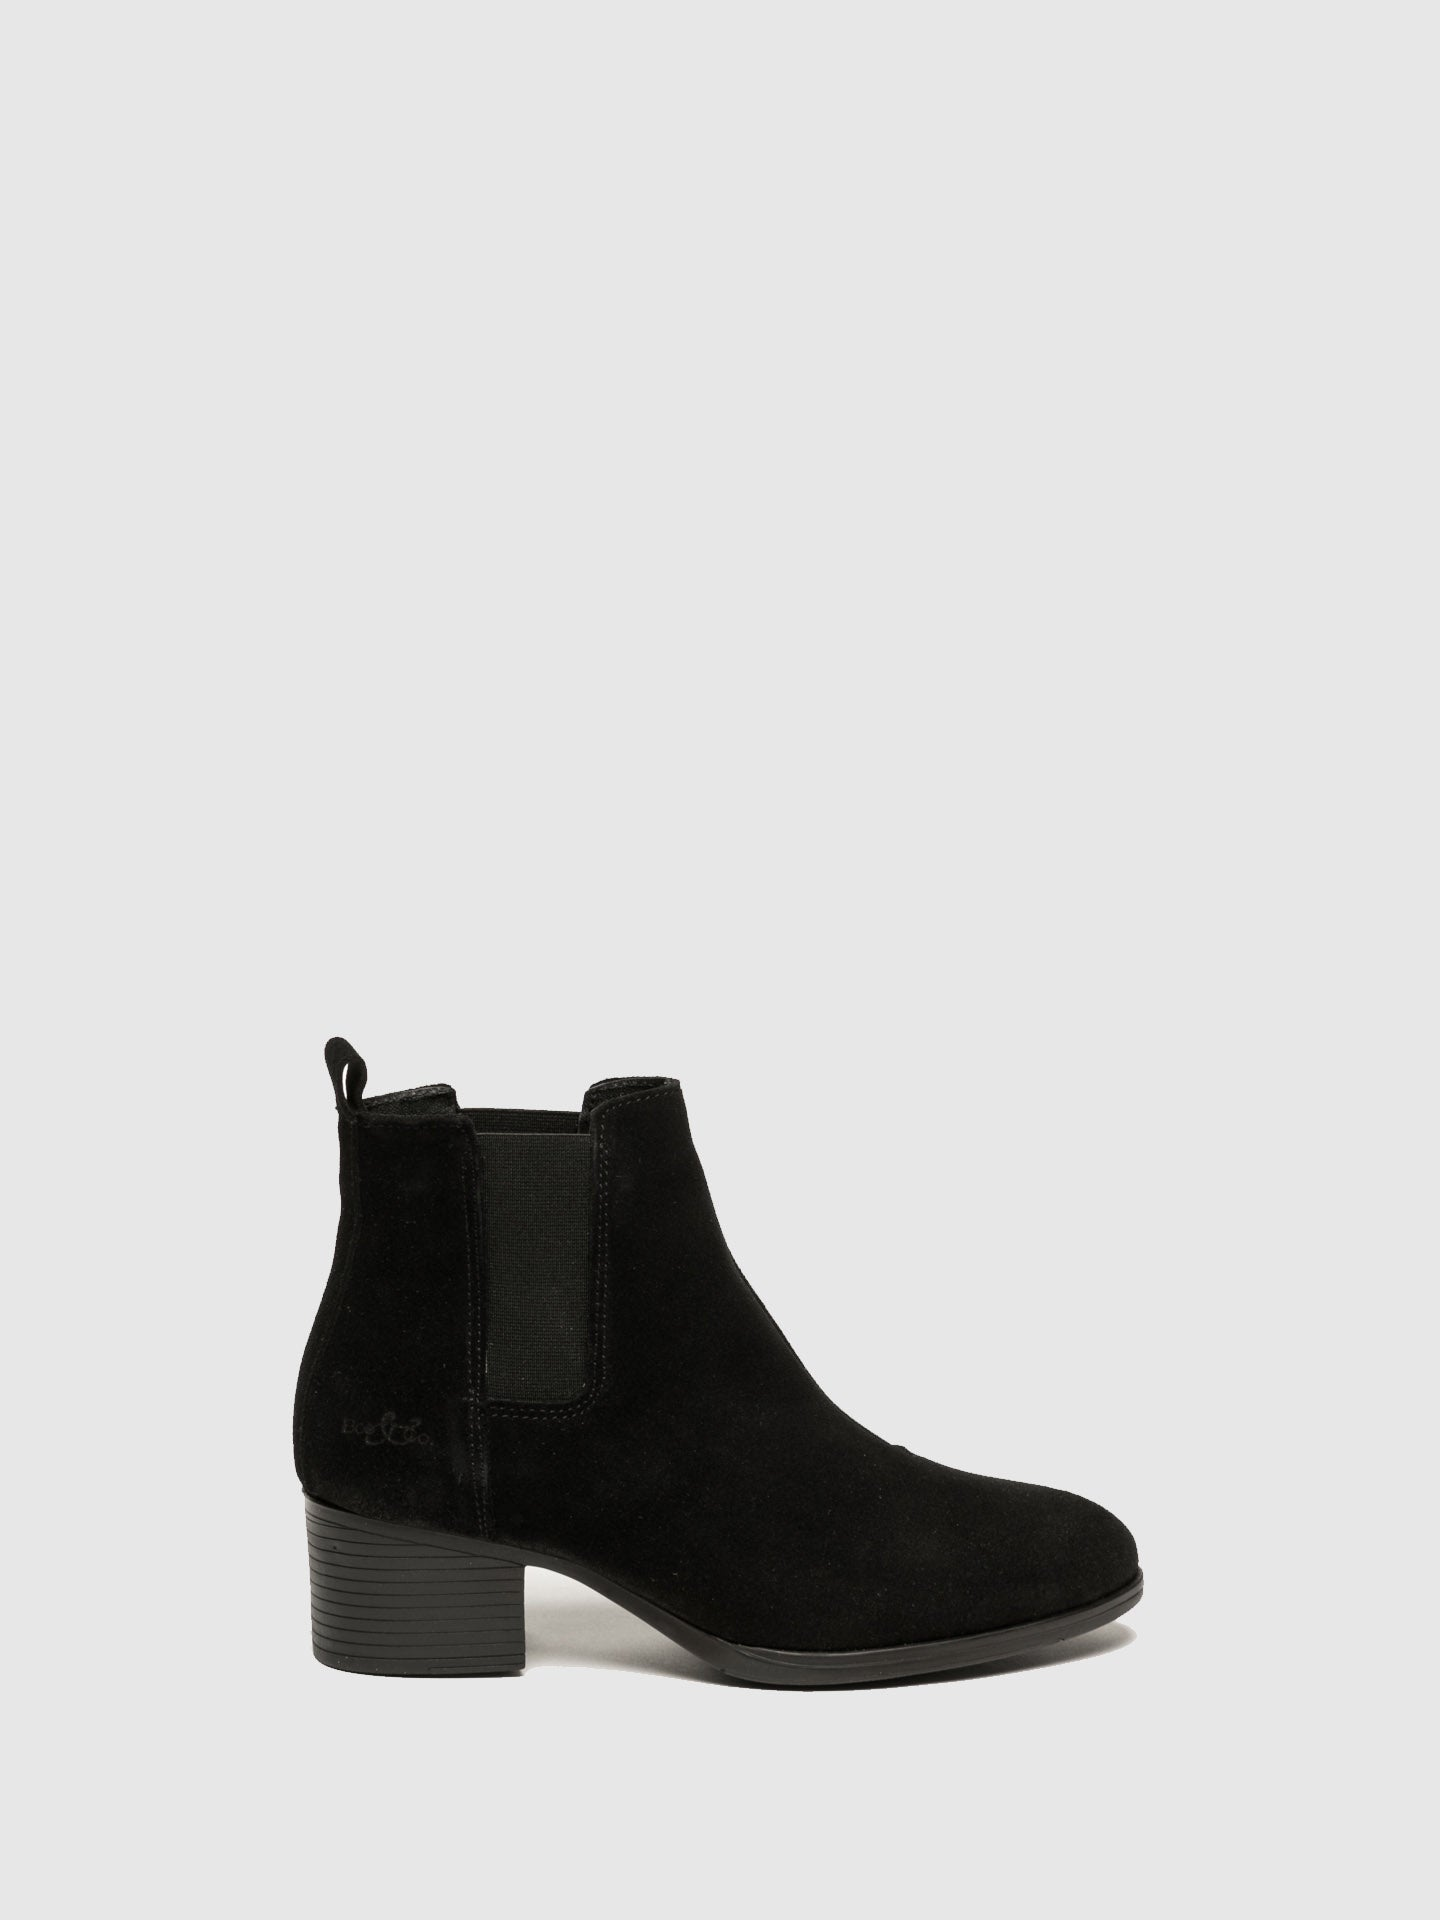 Bos&Co Black Chelsea Ankle Boots